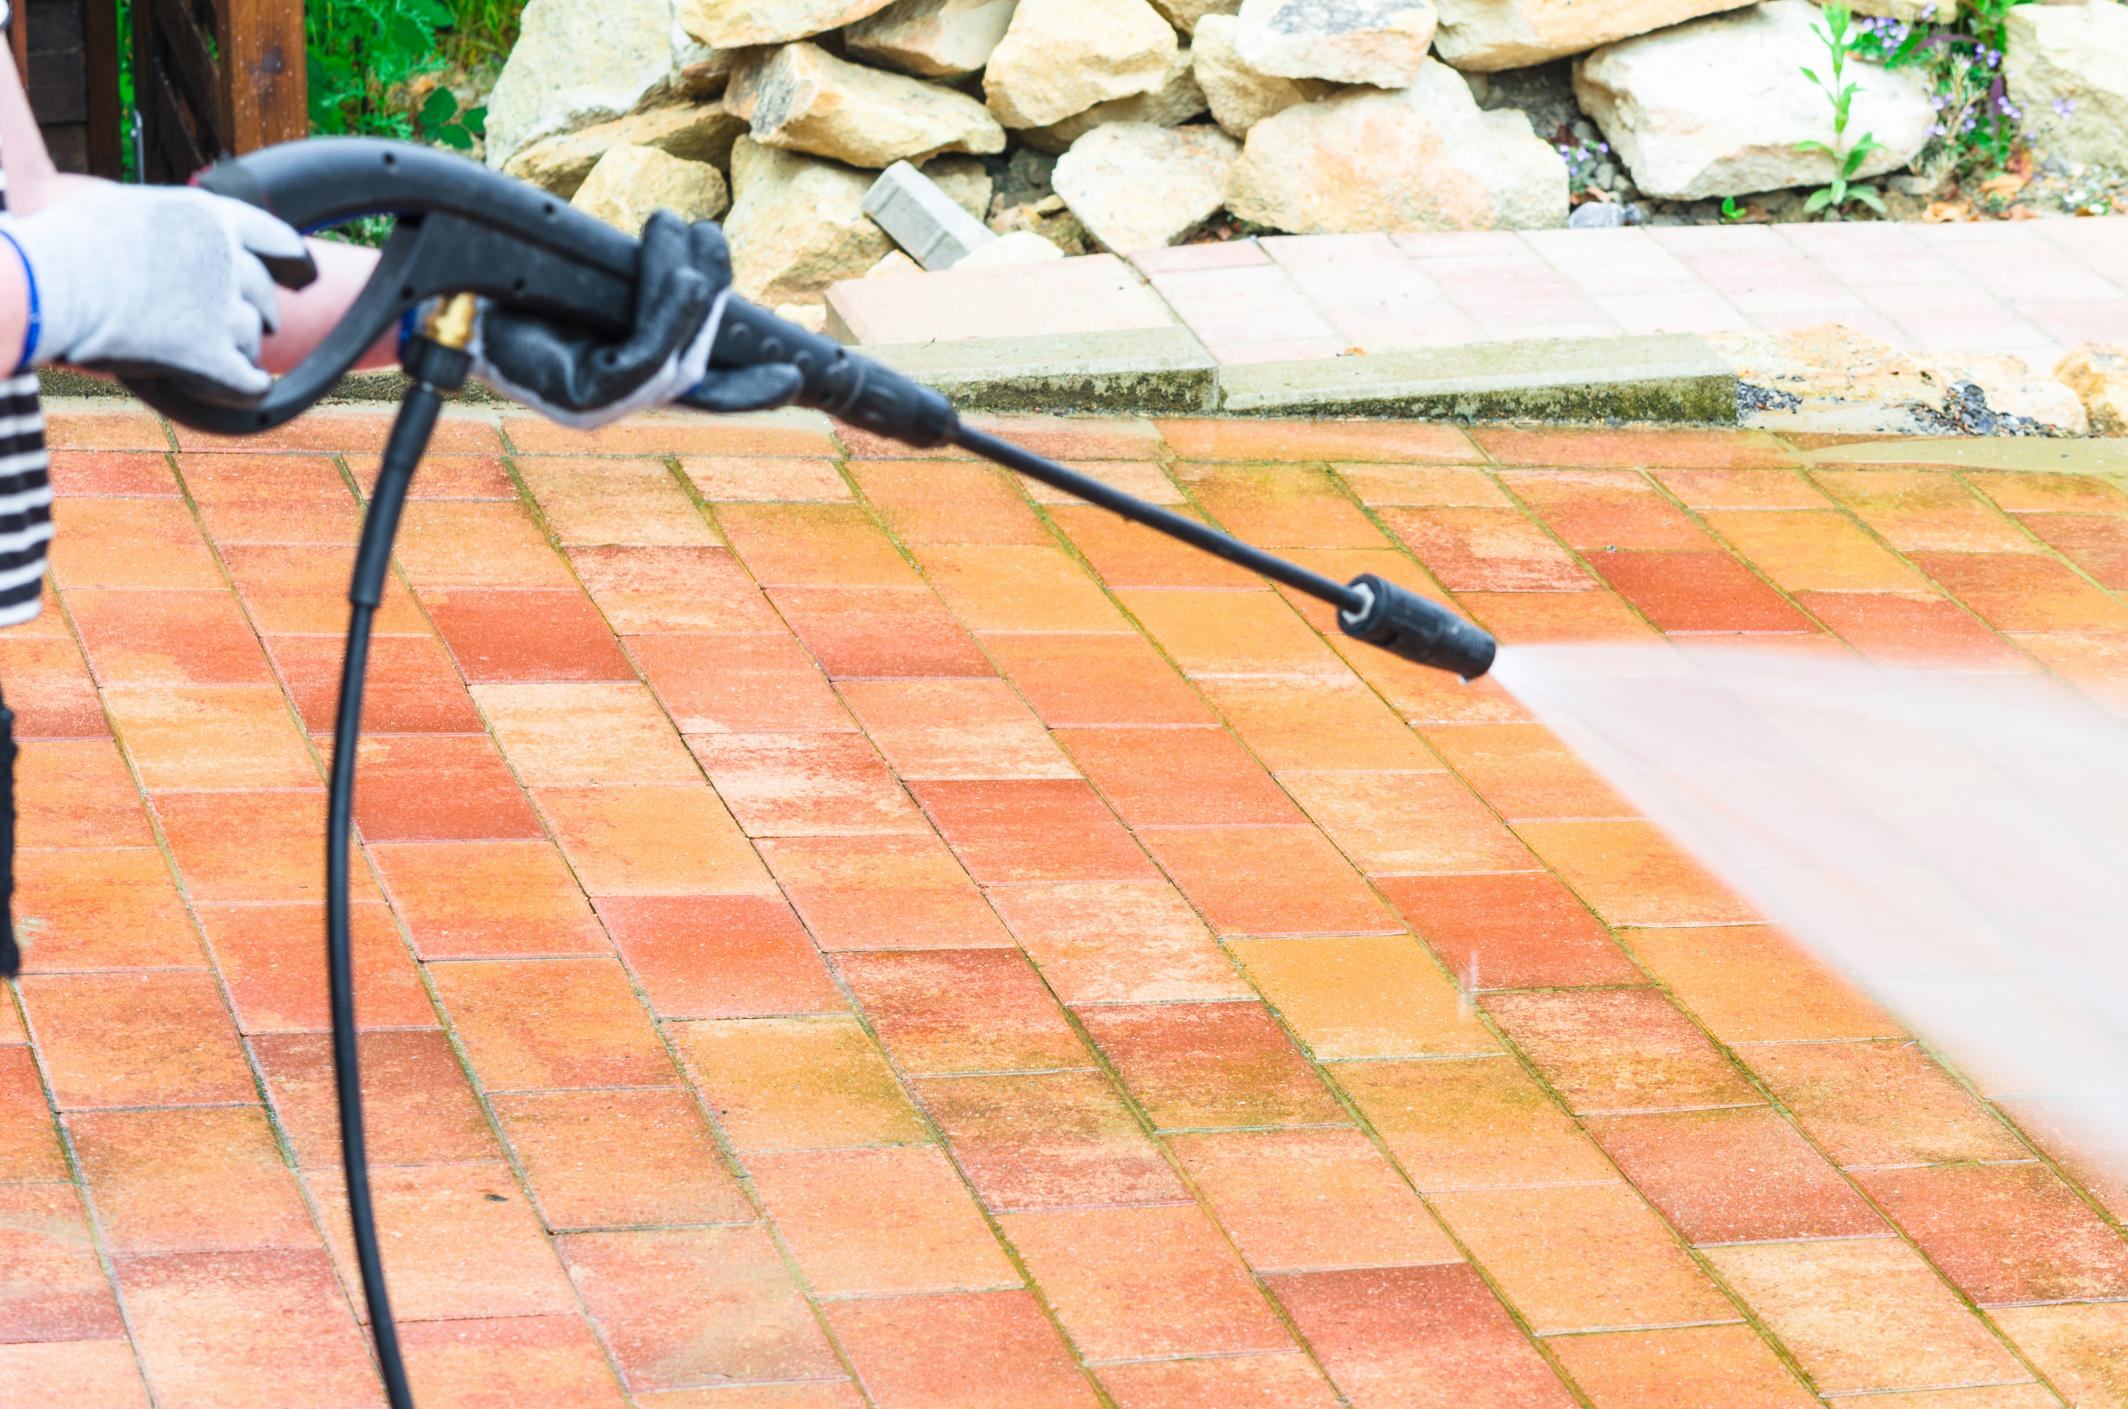 Gaston Gutter Cleaning of Vancouver - Pressure Washing